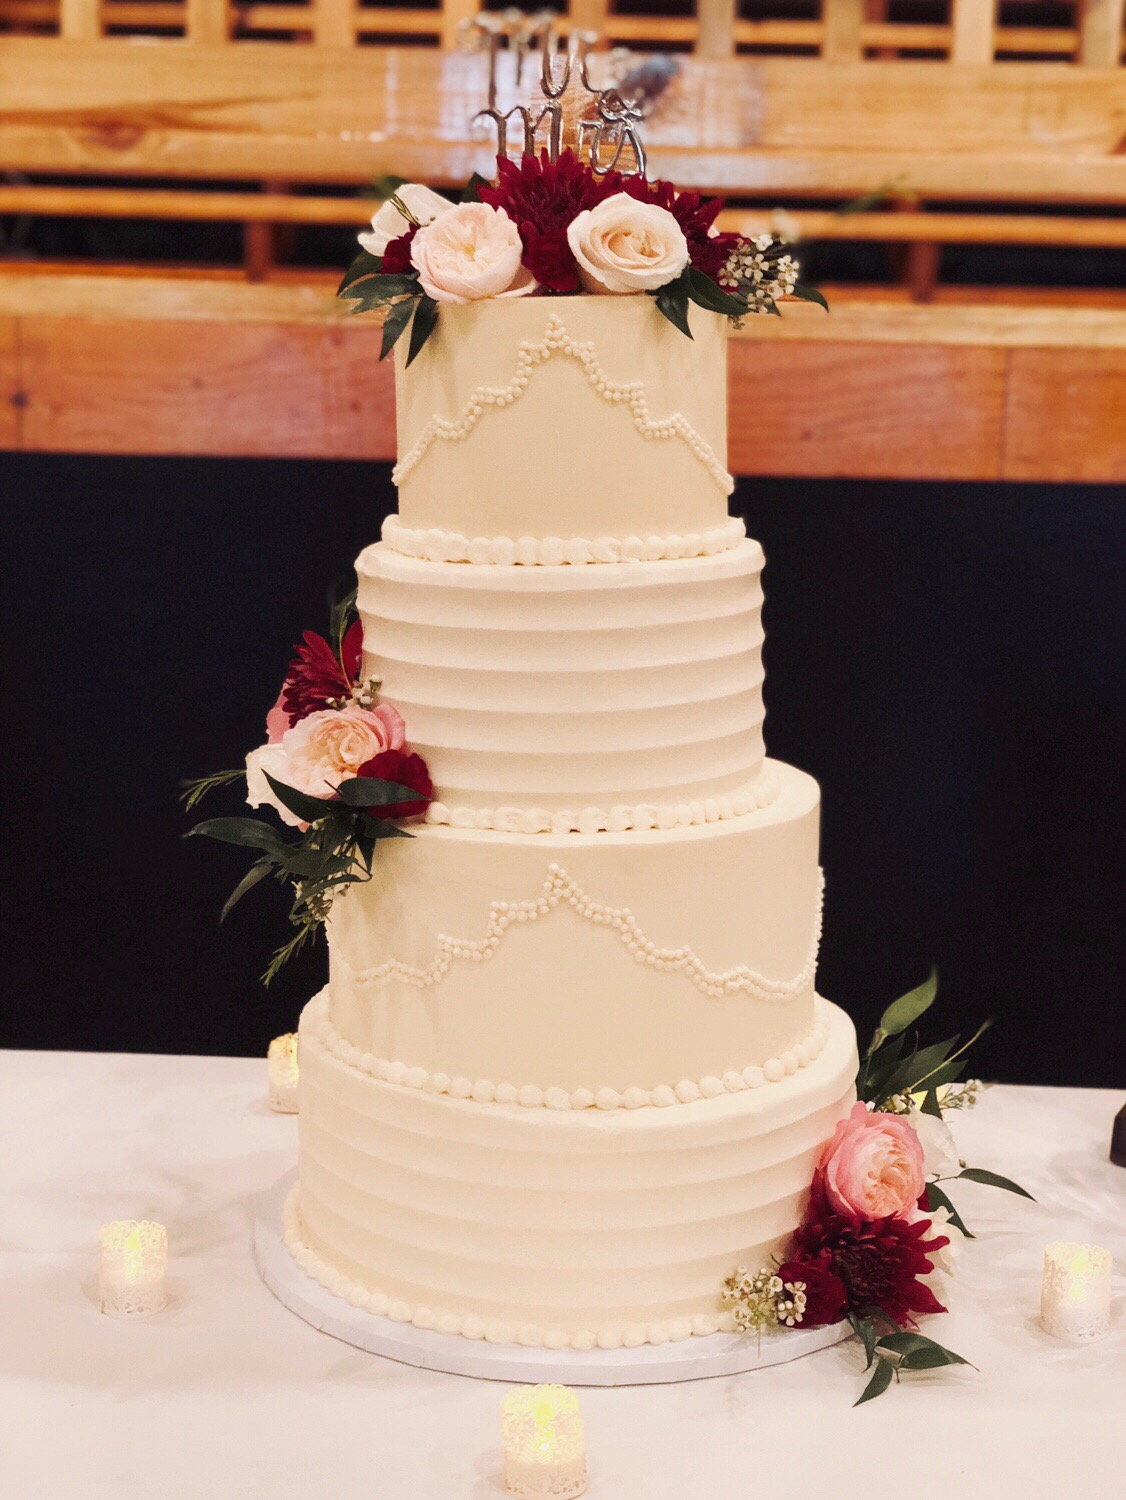 4 tier wedding cake.JPG